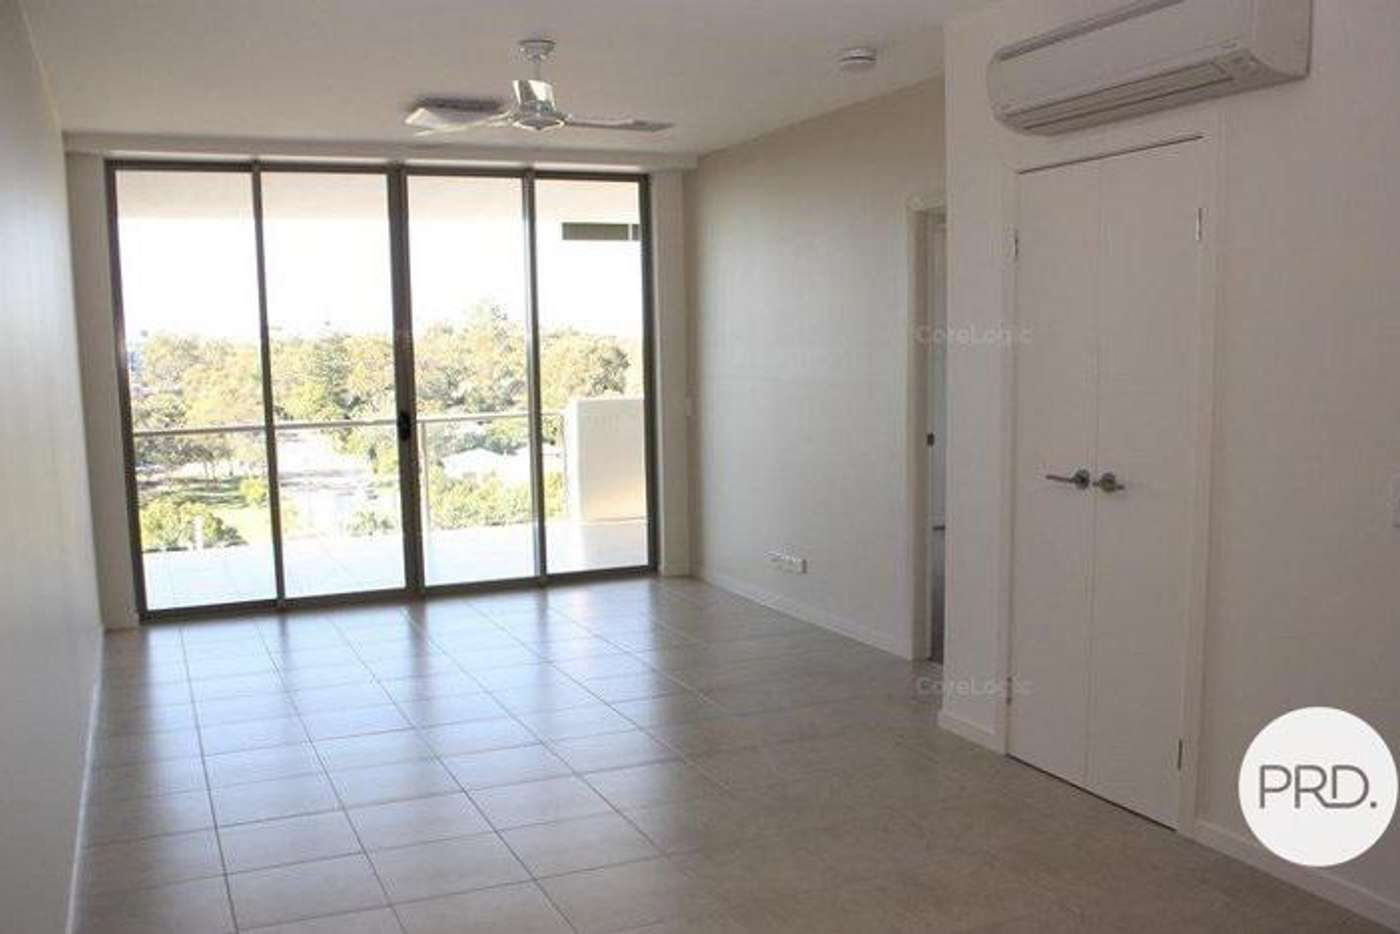 Fifth view of Homely apartment listing, 6/74 Durham Street, St Lucia QLD 4067